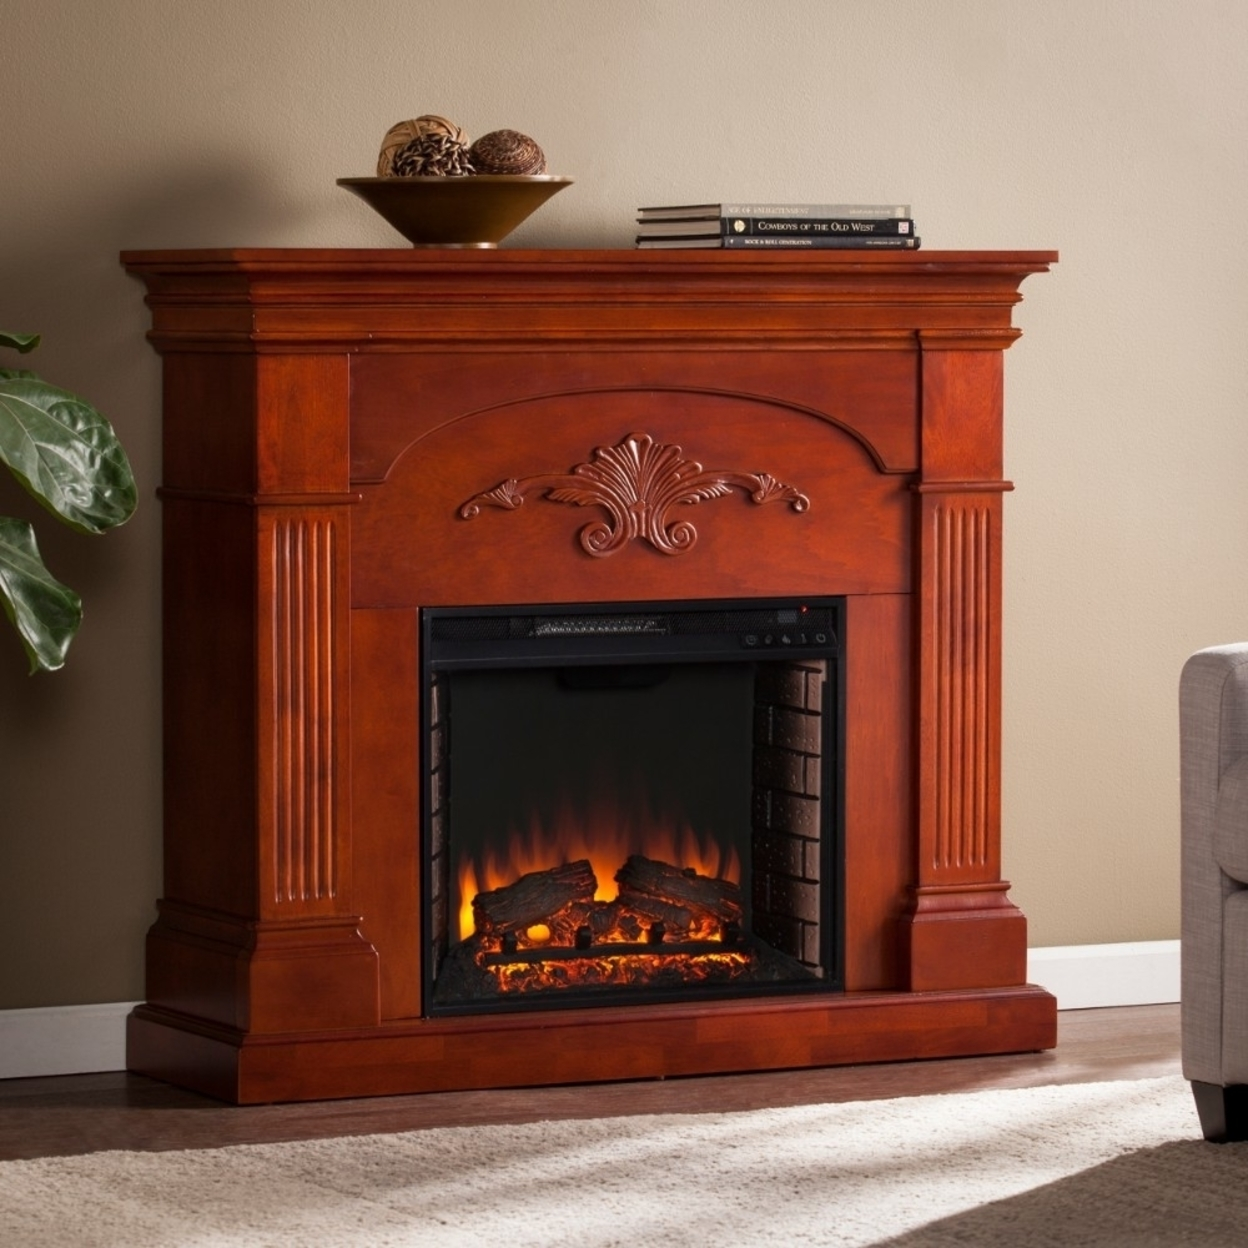 Sicilian Harvest Electric Fireplace - Mahogany 58995683c98fc433fe5a52b8